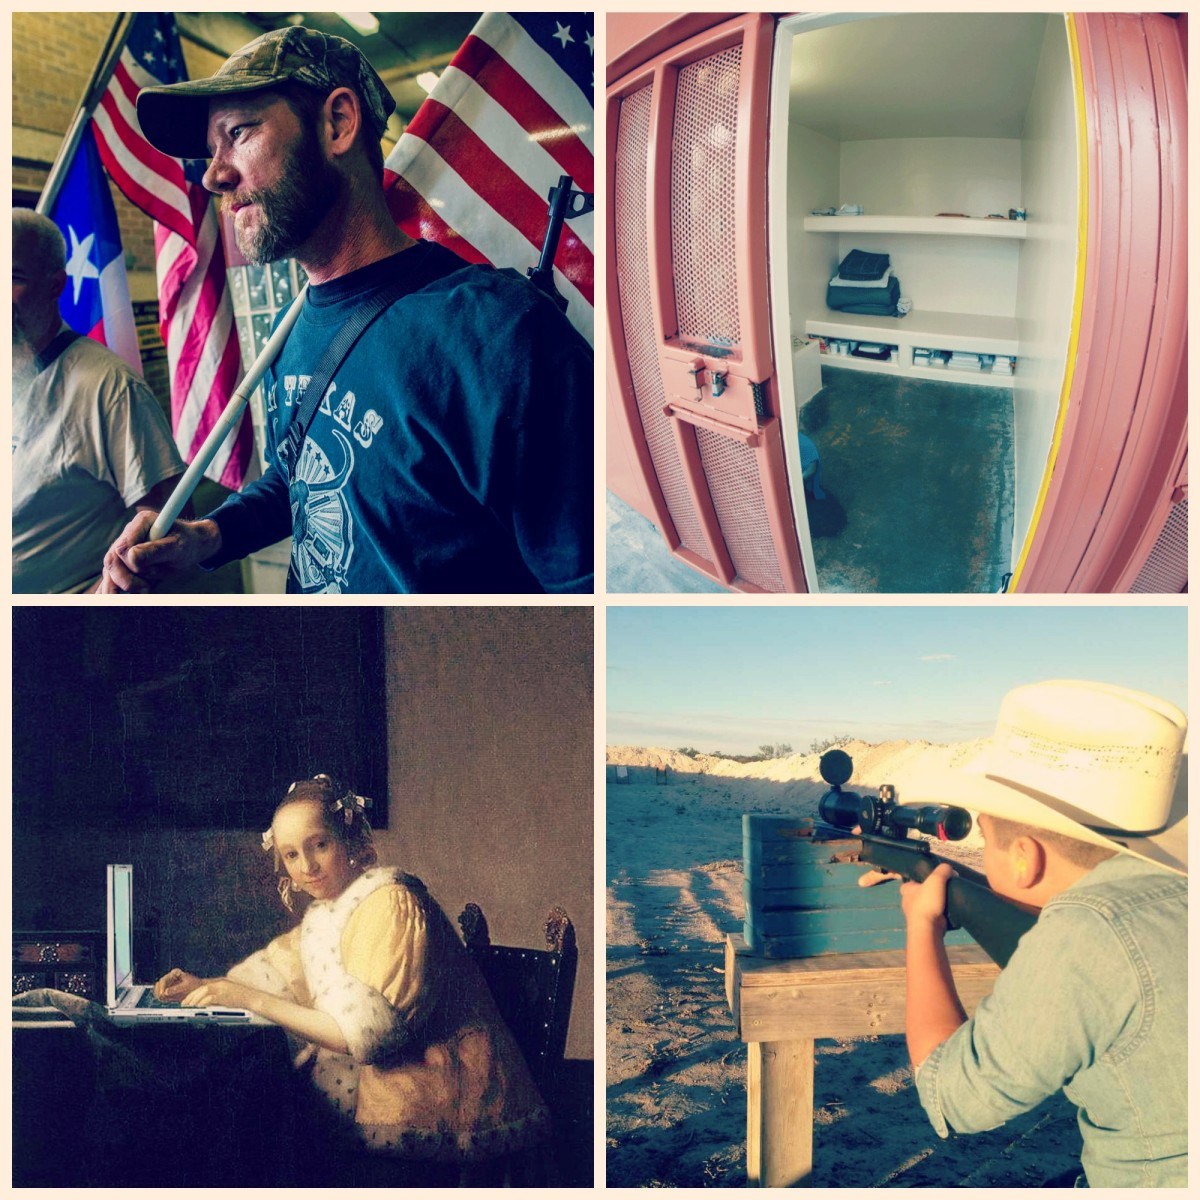 (Photos, clockwise from left: Drew Anthony Smith/the California Department of Corrections and Rehabilitation/Wikimedia Commons/Mike Licht)